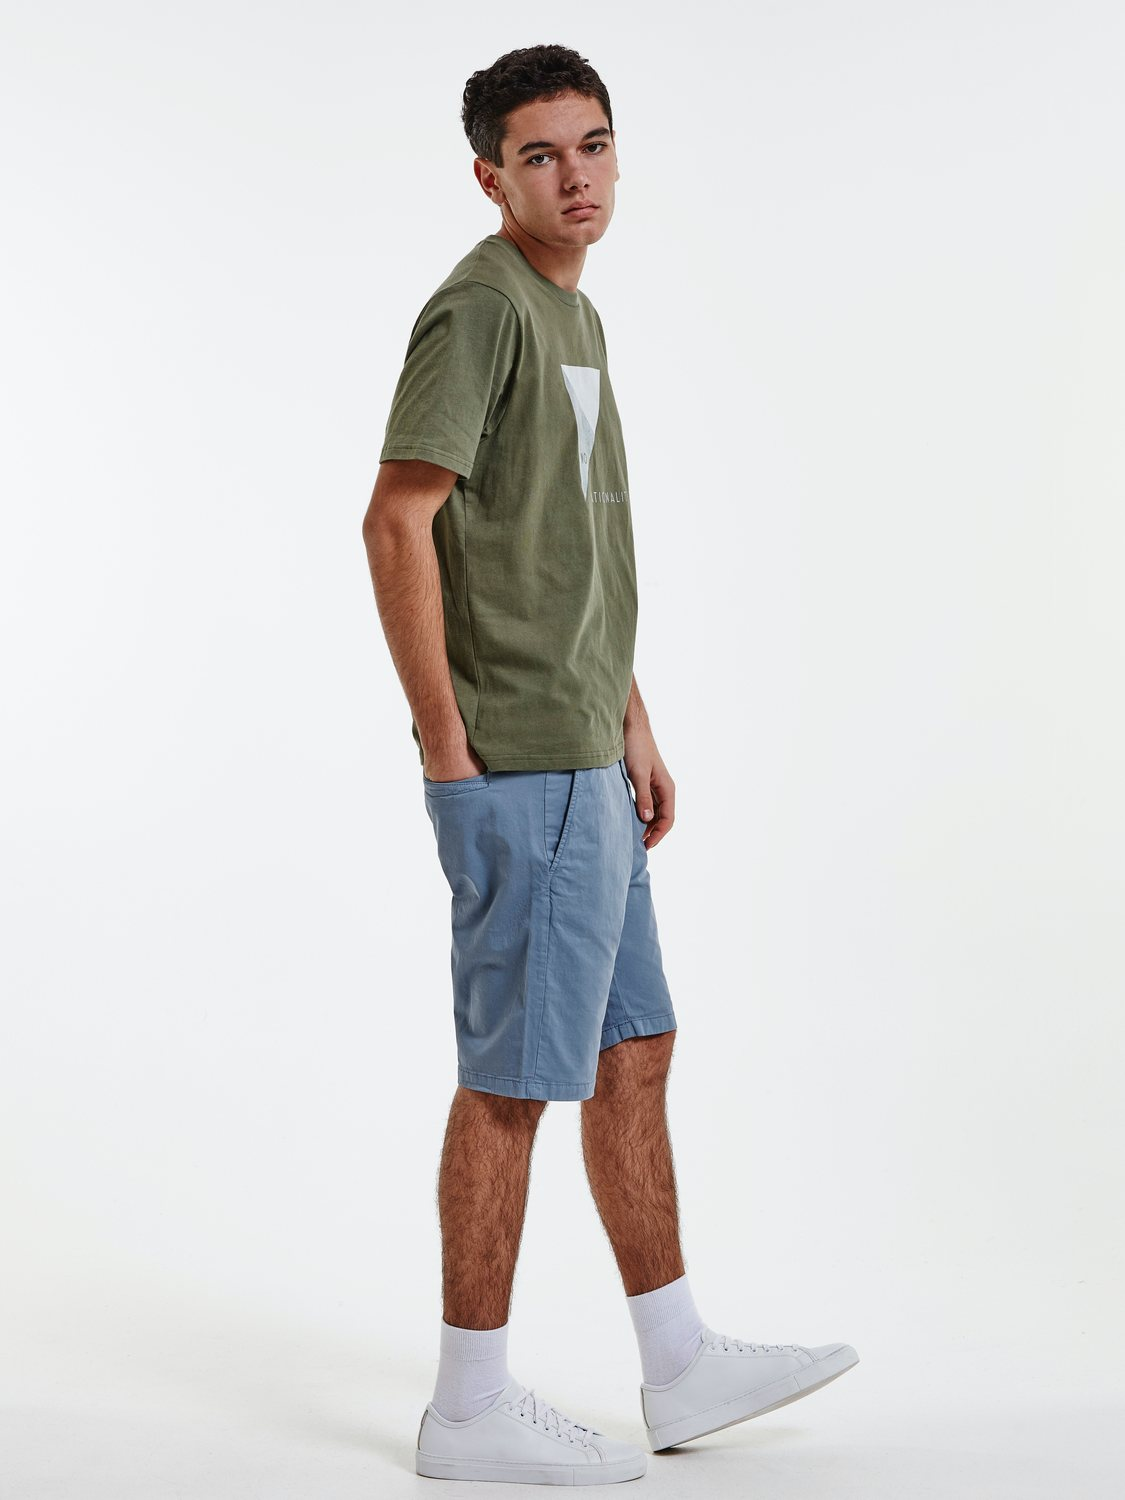 NN07 - CROWN SHORTS 1004 LIGHT BLUE | Gate36 Hobro